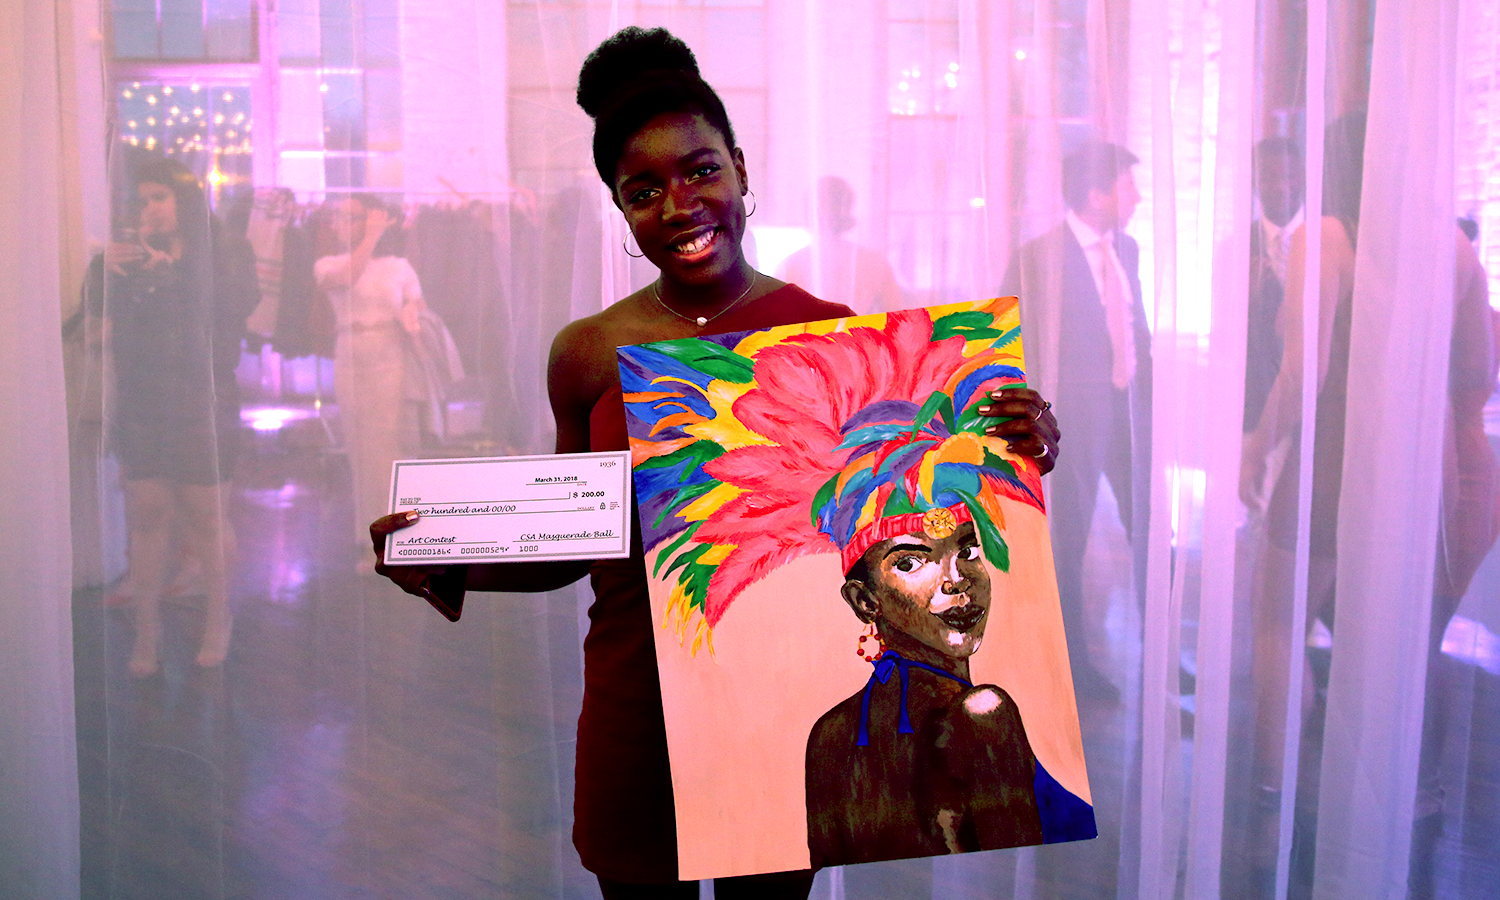 X stands with her prize winning photo during the annual Masquerade Ball hosted by the Carribbean Students Association at the Cracker Factory in Geneva, N.Y.